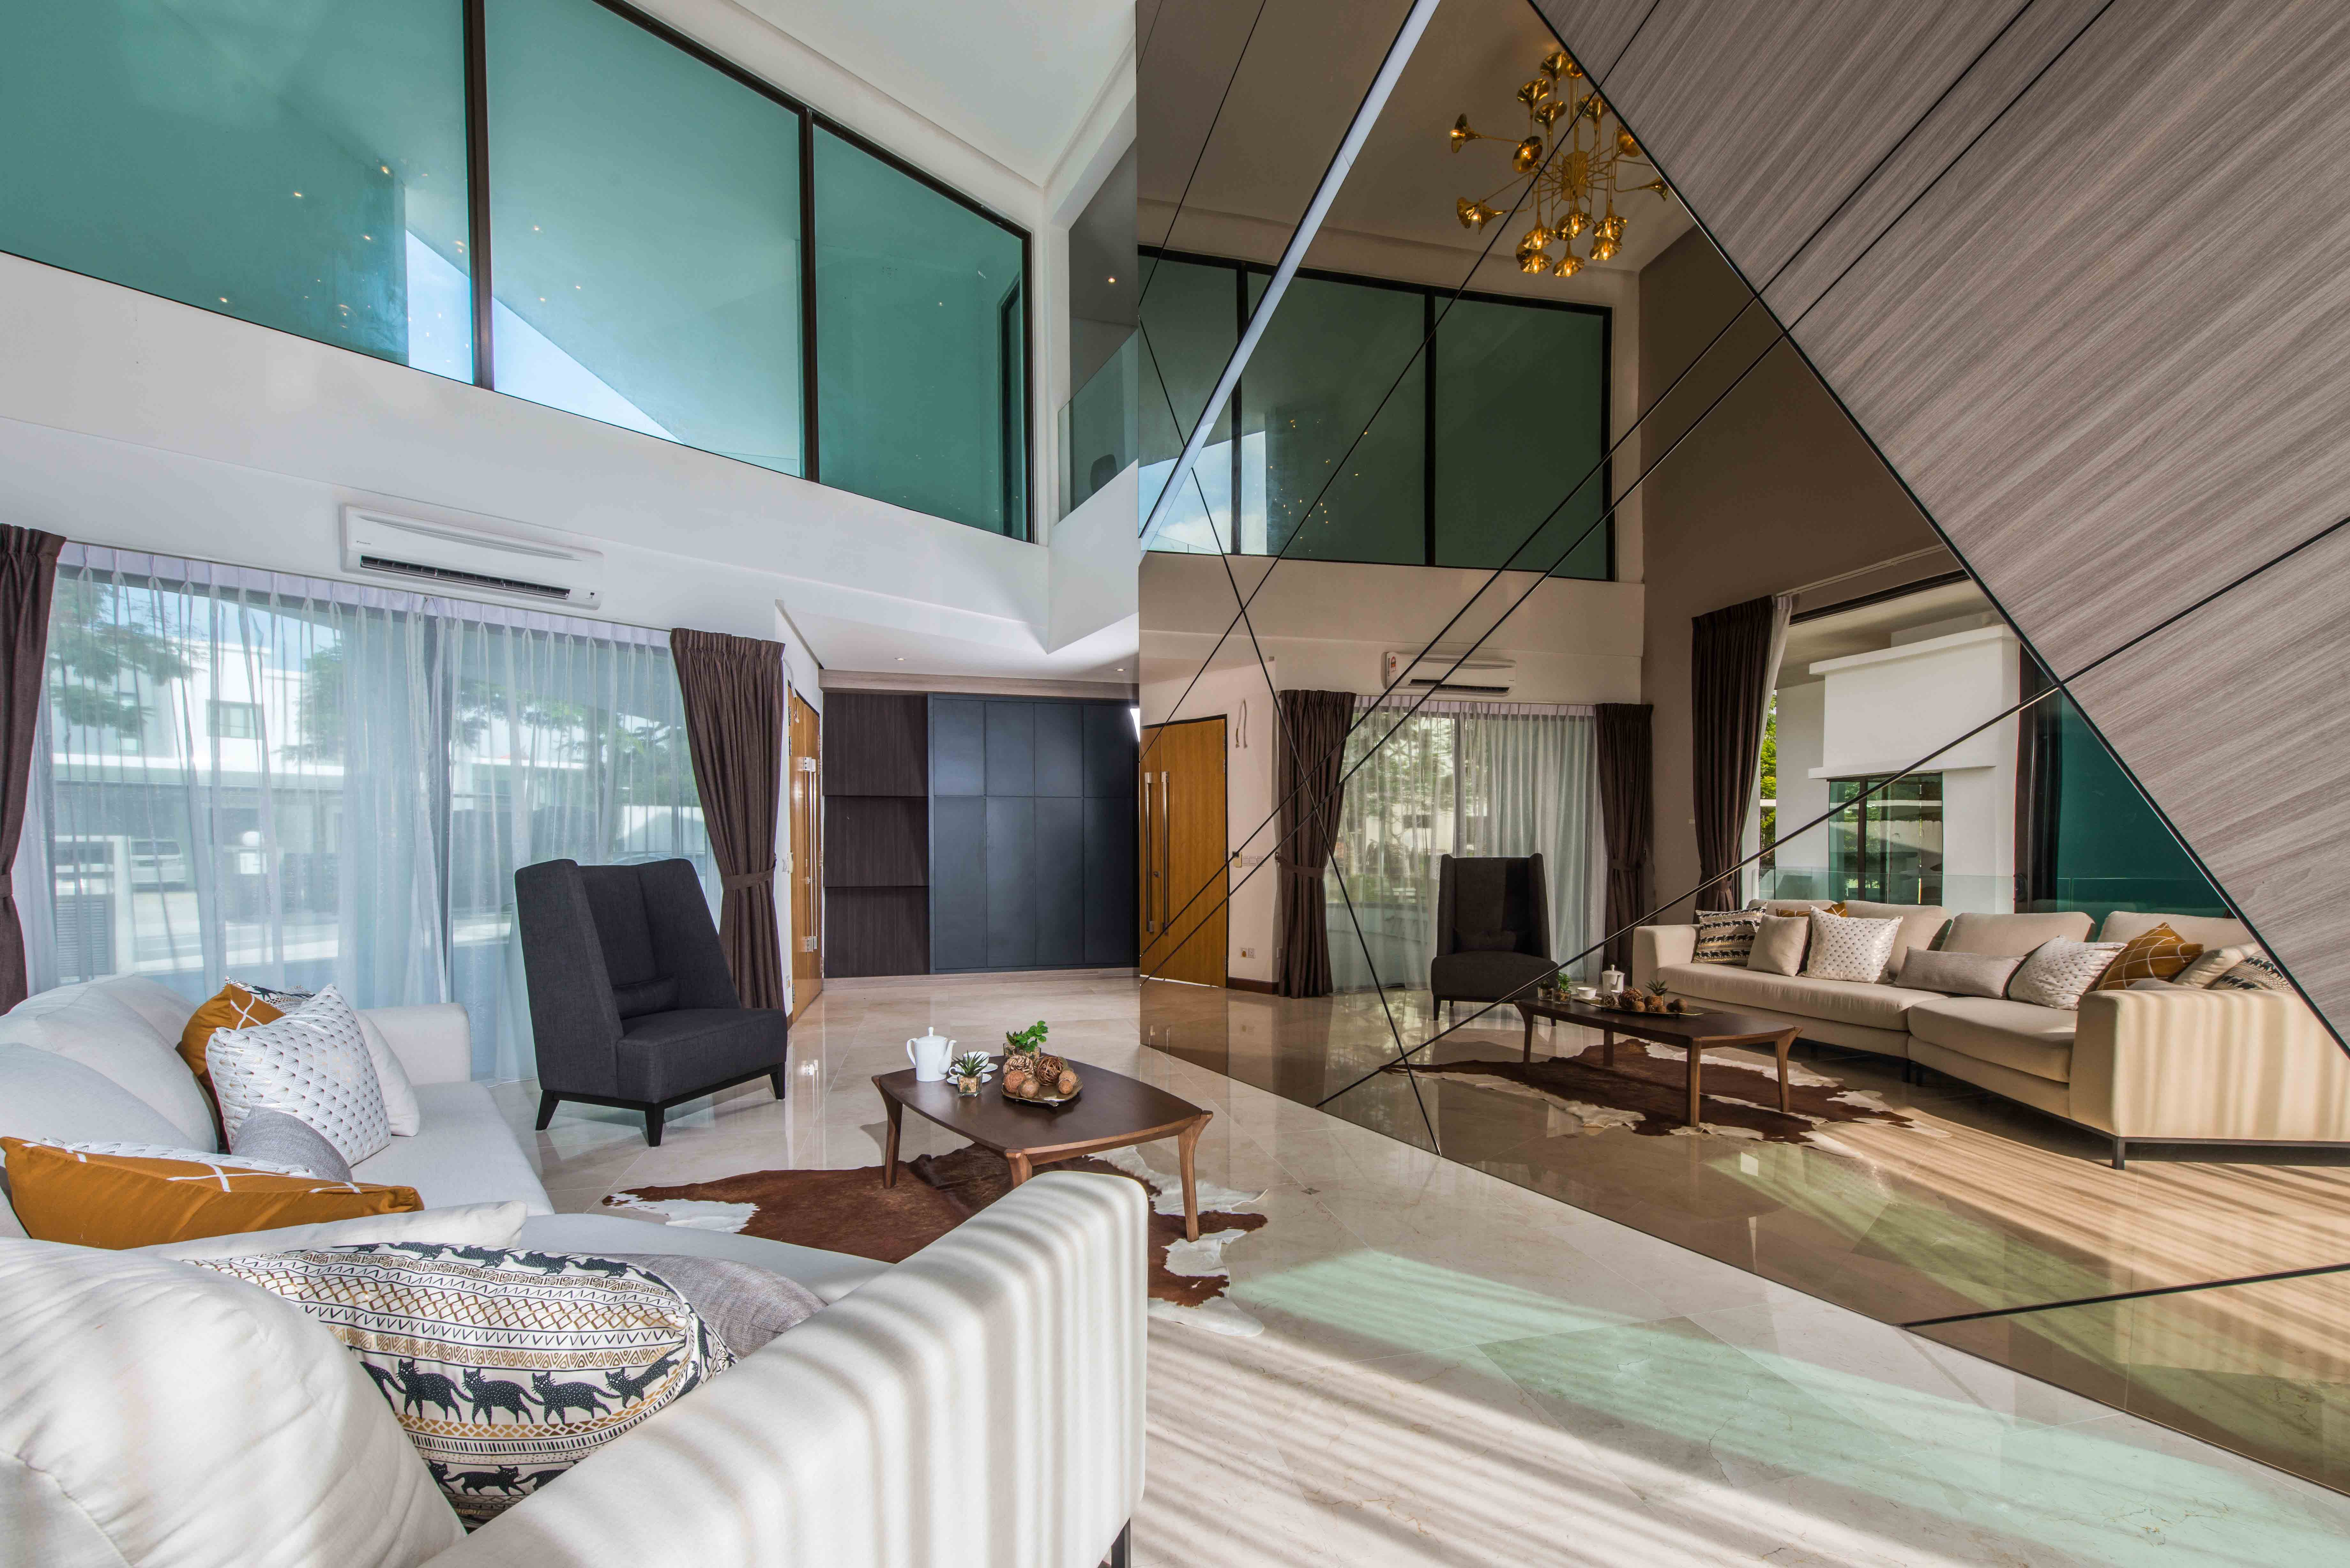 The residential interior design concept by Nu Infinity for The Mansion in Malaysia